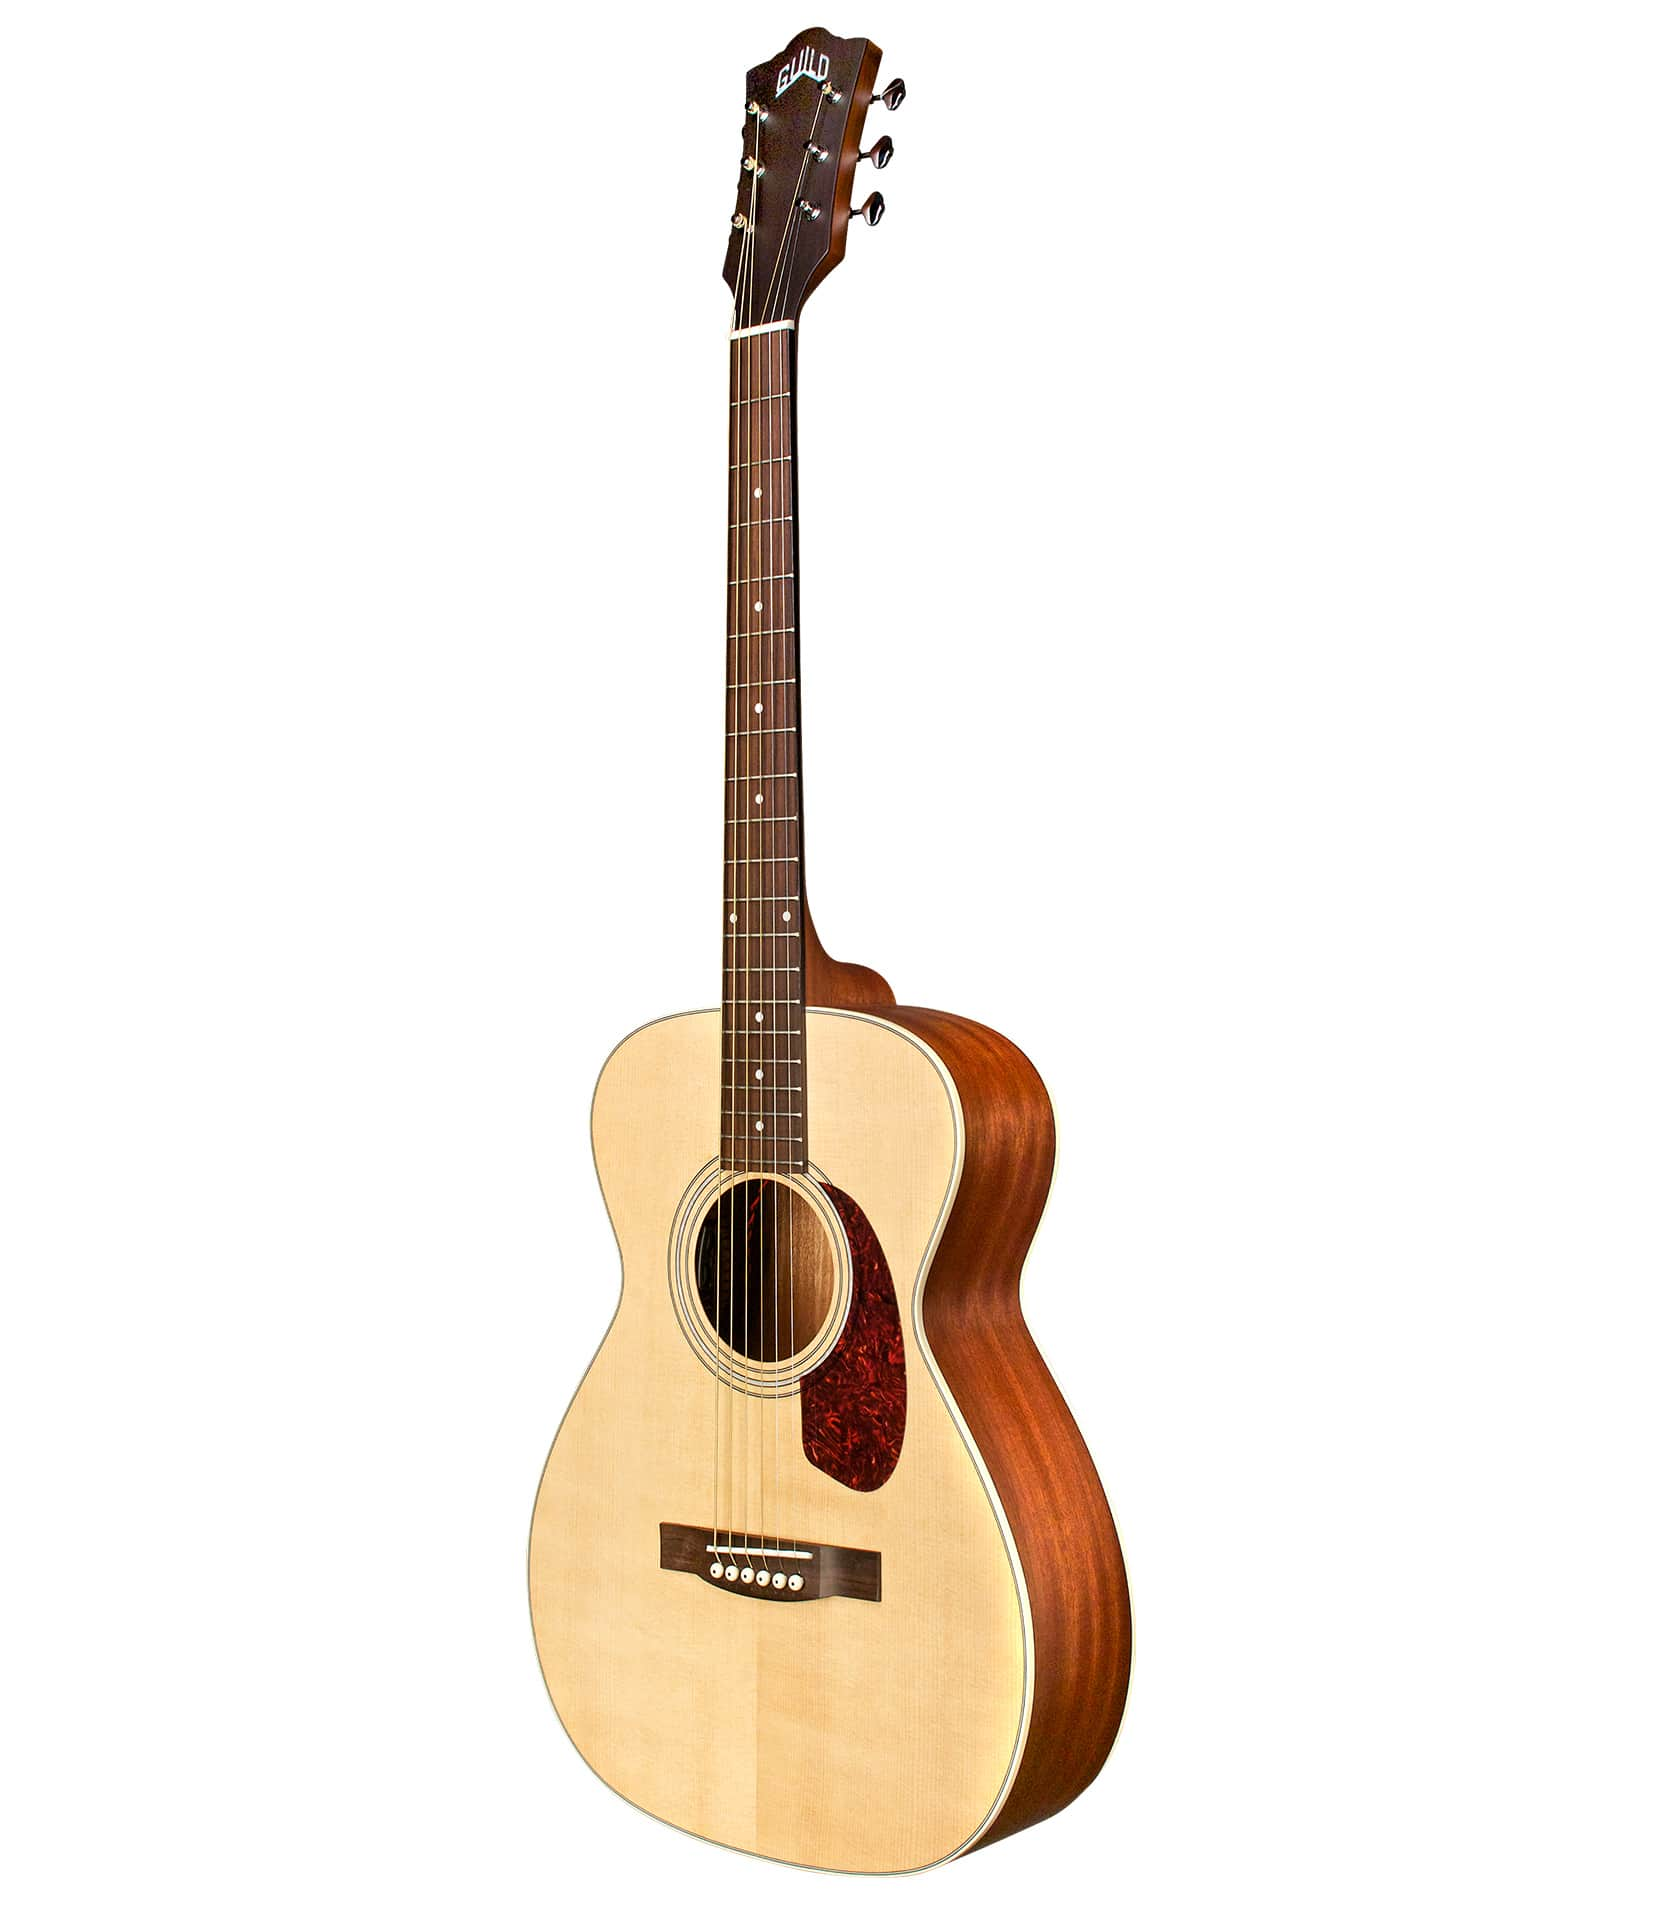 Melody House Musical Instruments Store - M240E Concert Acoustic Guitar Westerly Collection